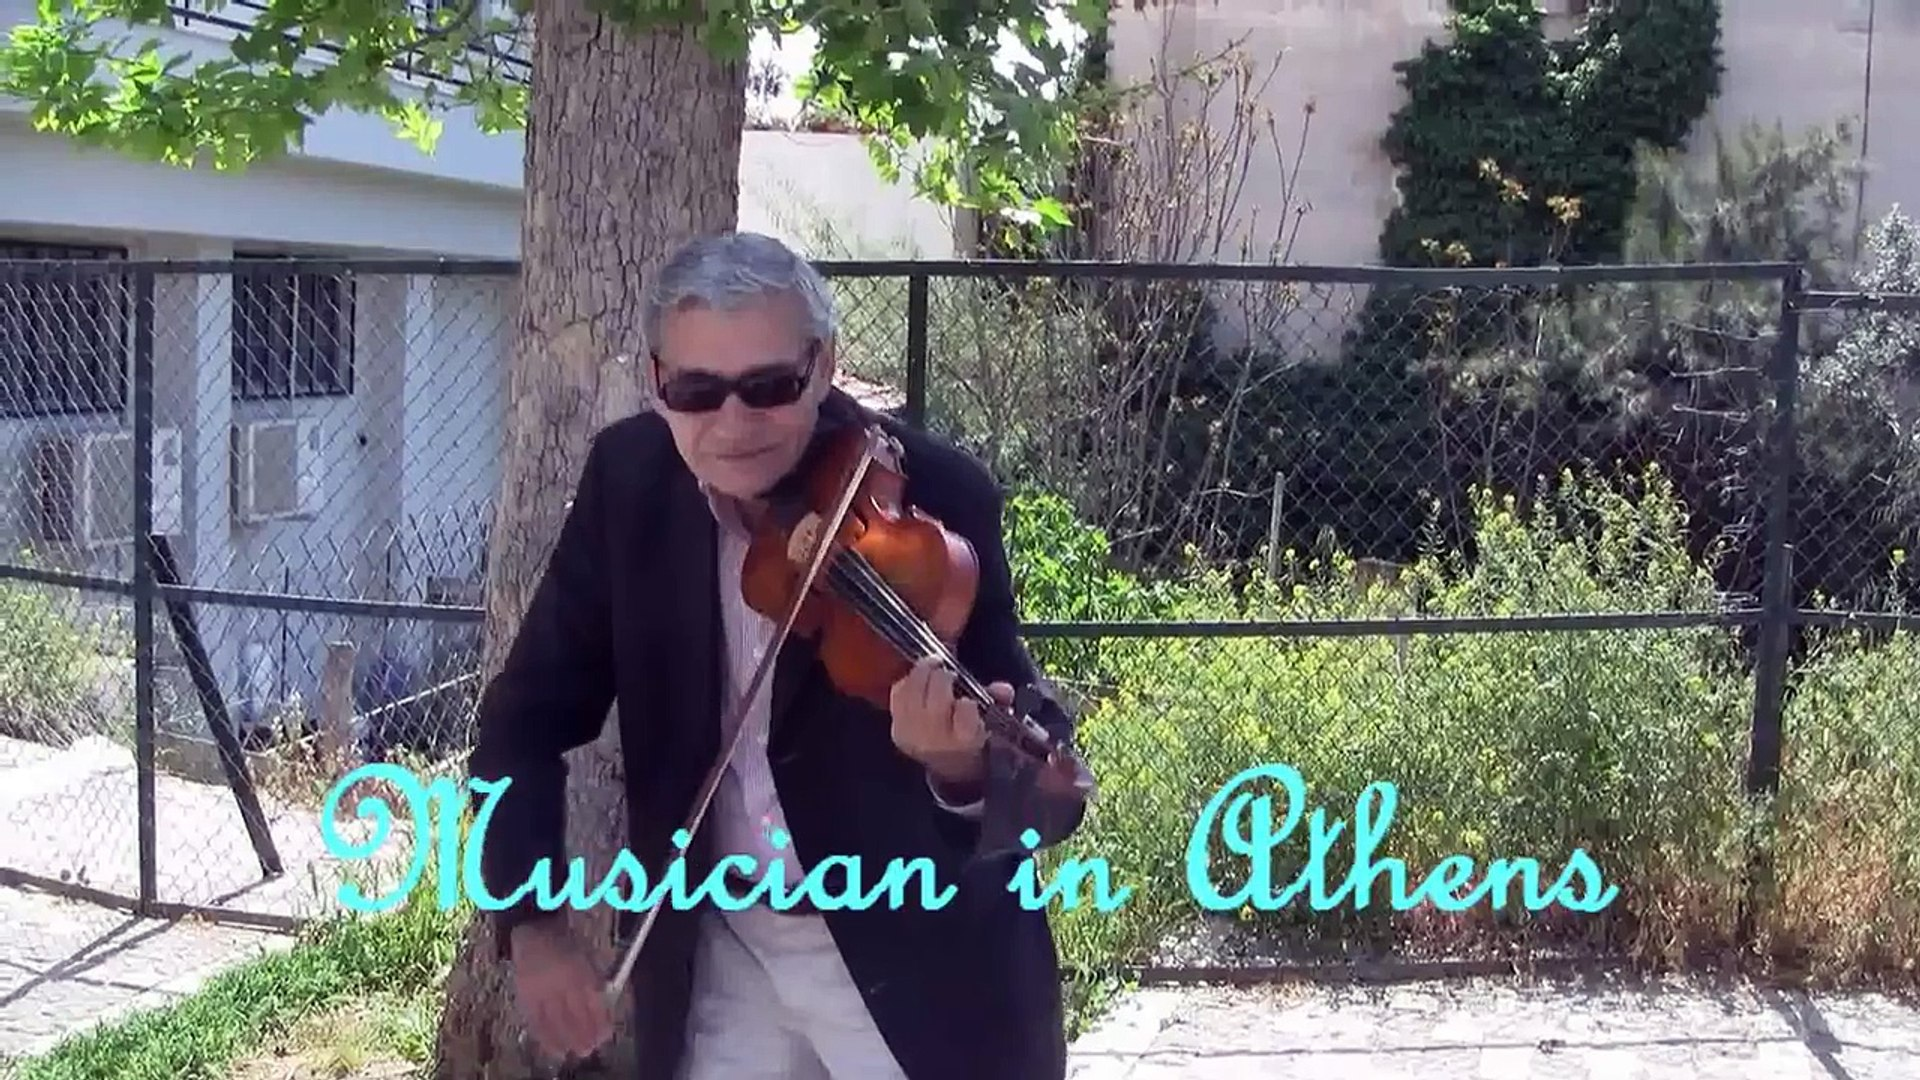 Musician Athens